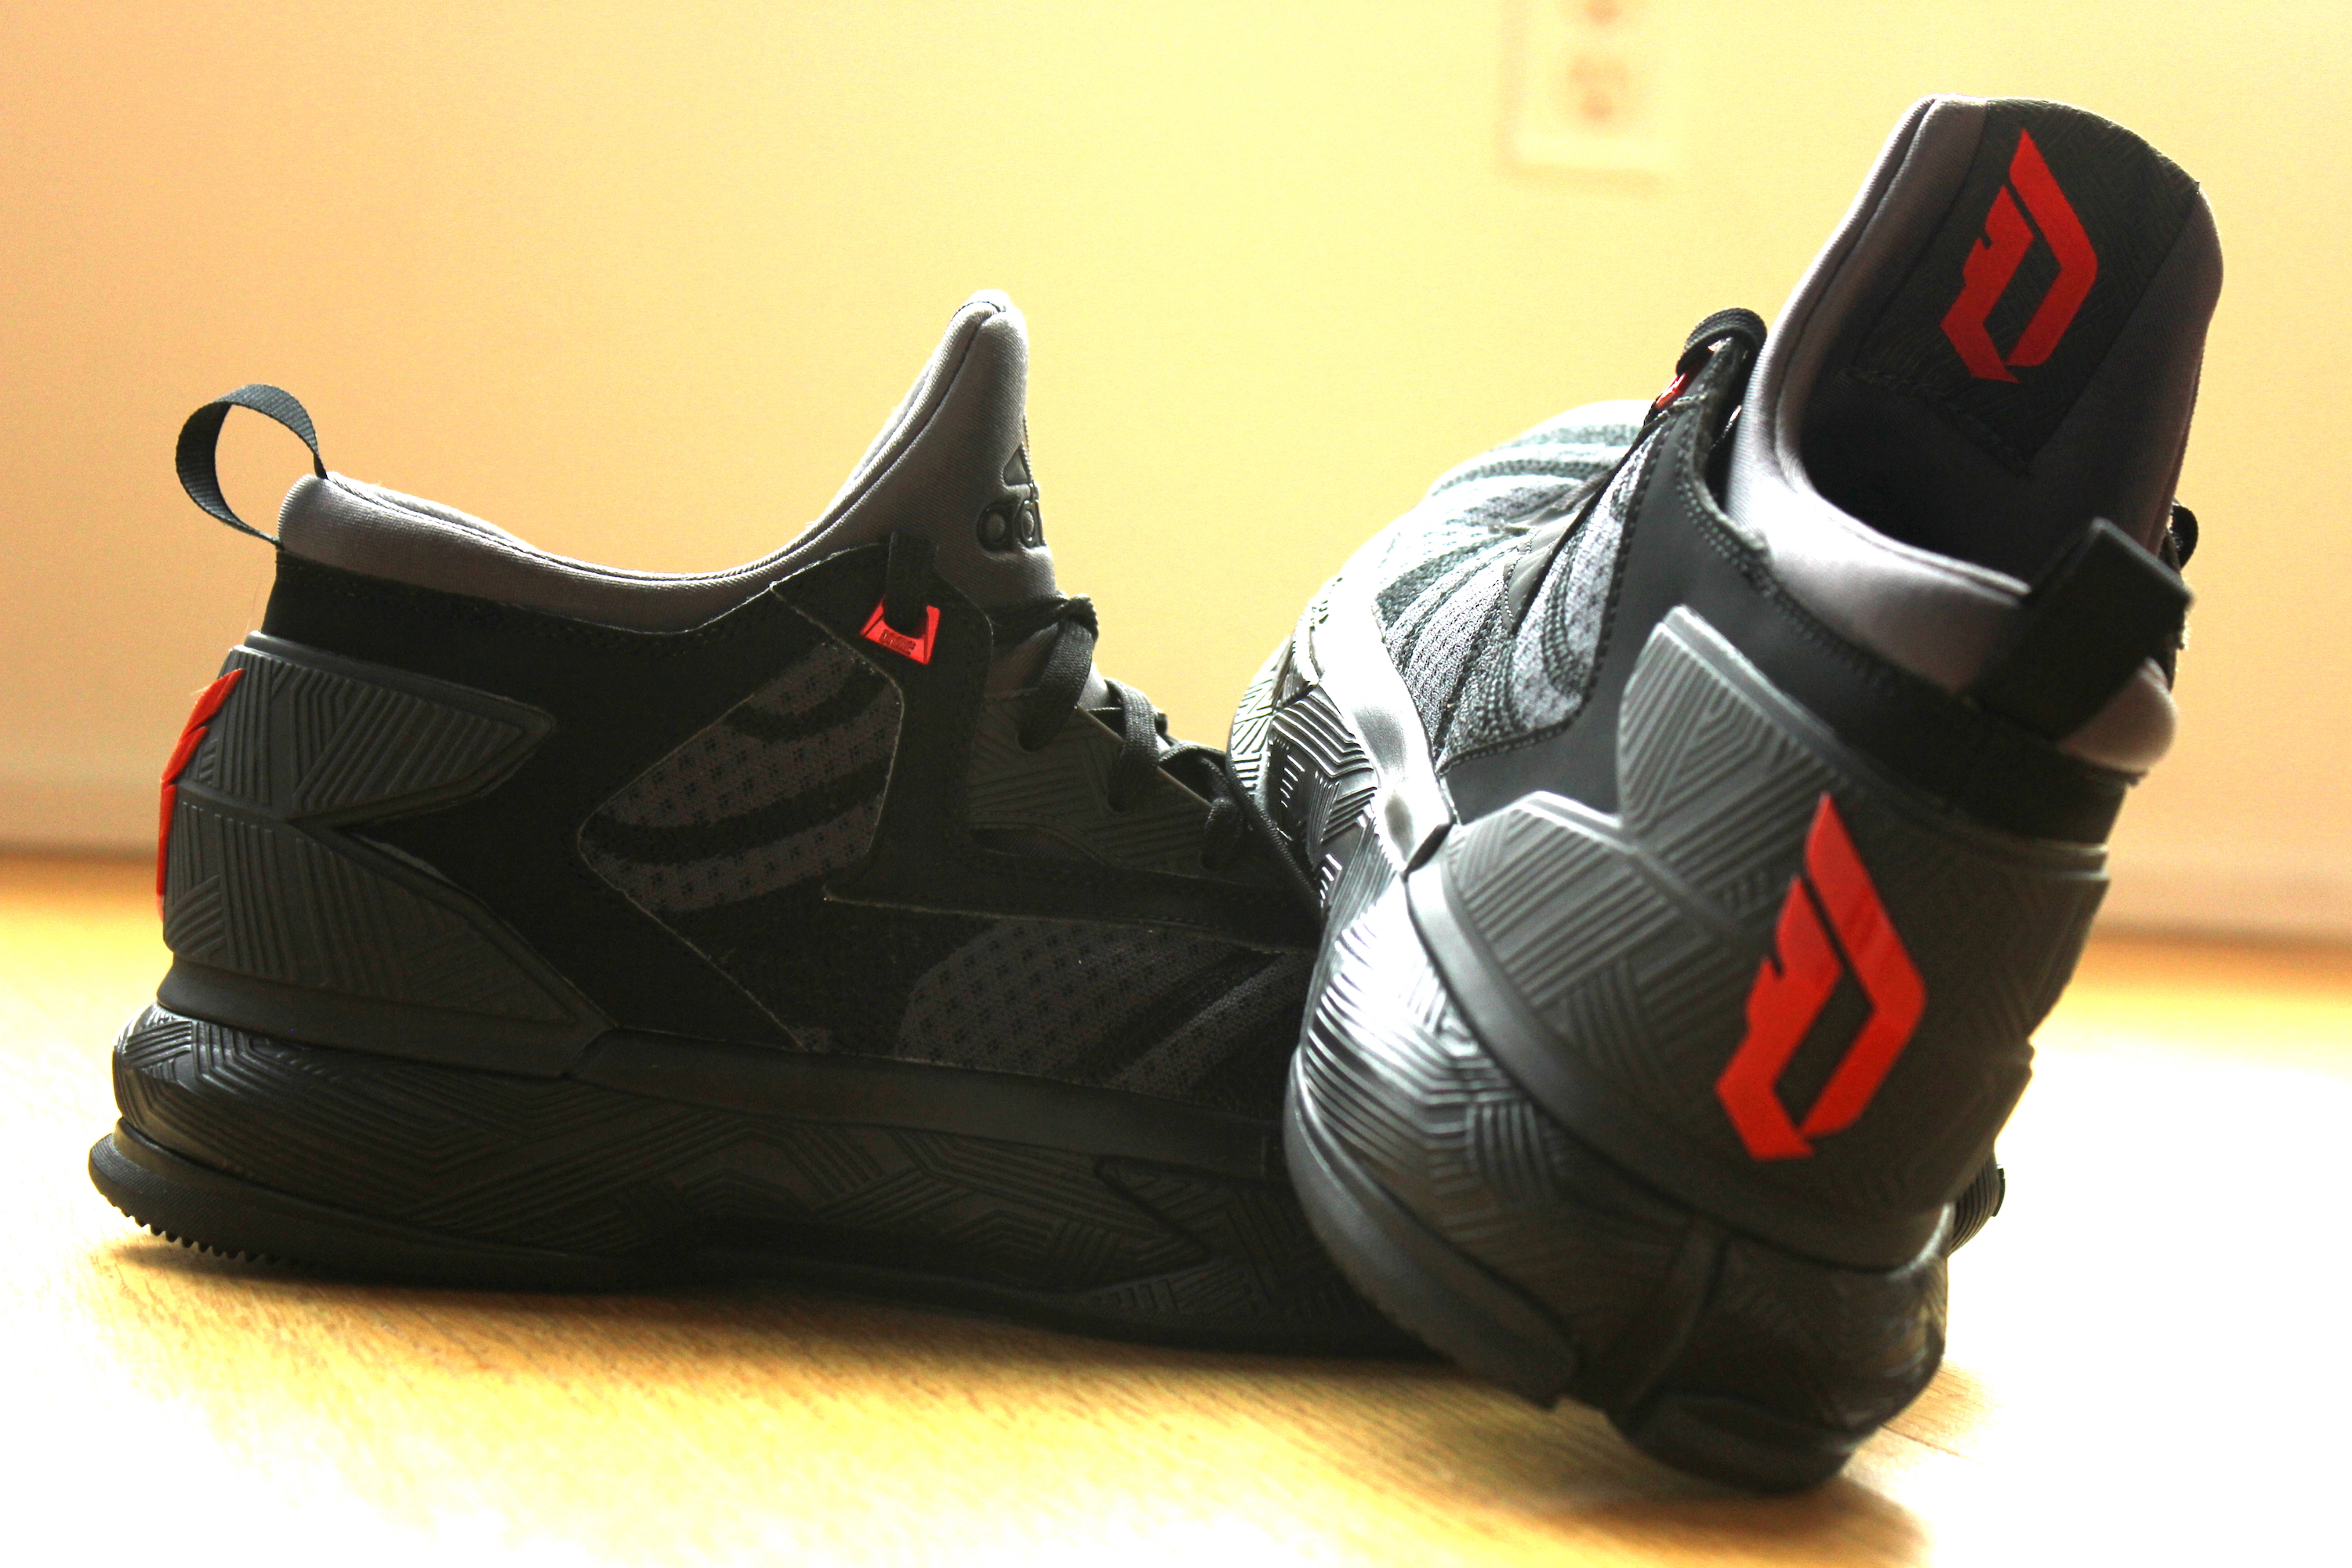 4190ed5952f60 D Lillard 2 Shoe Review: Boost vs. Bounce - Blazer's Edge